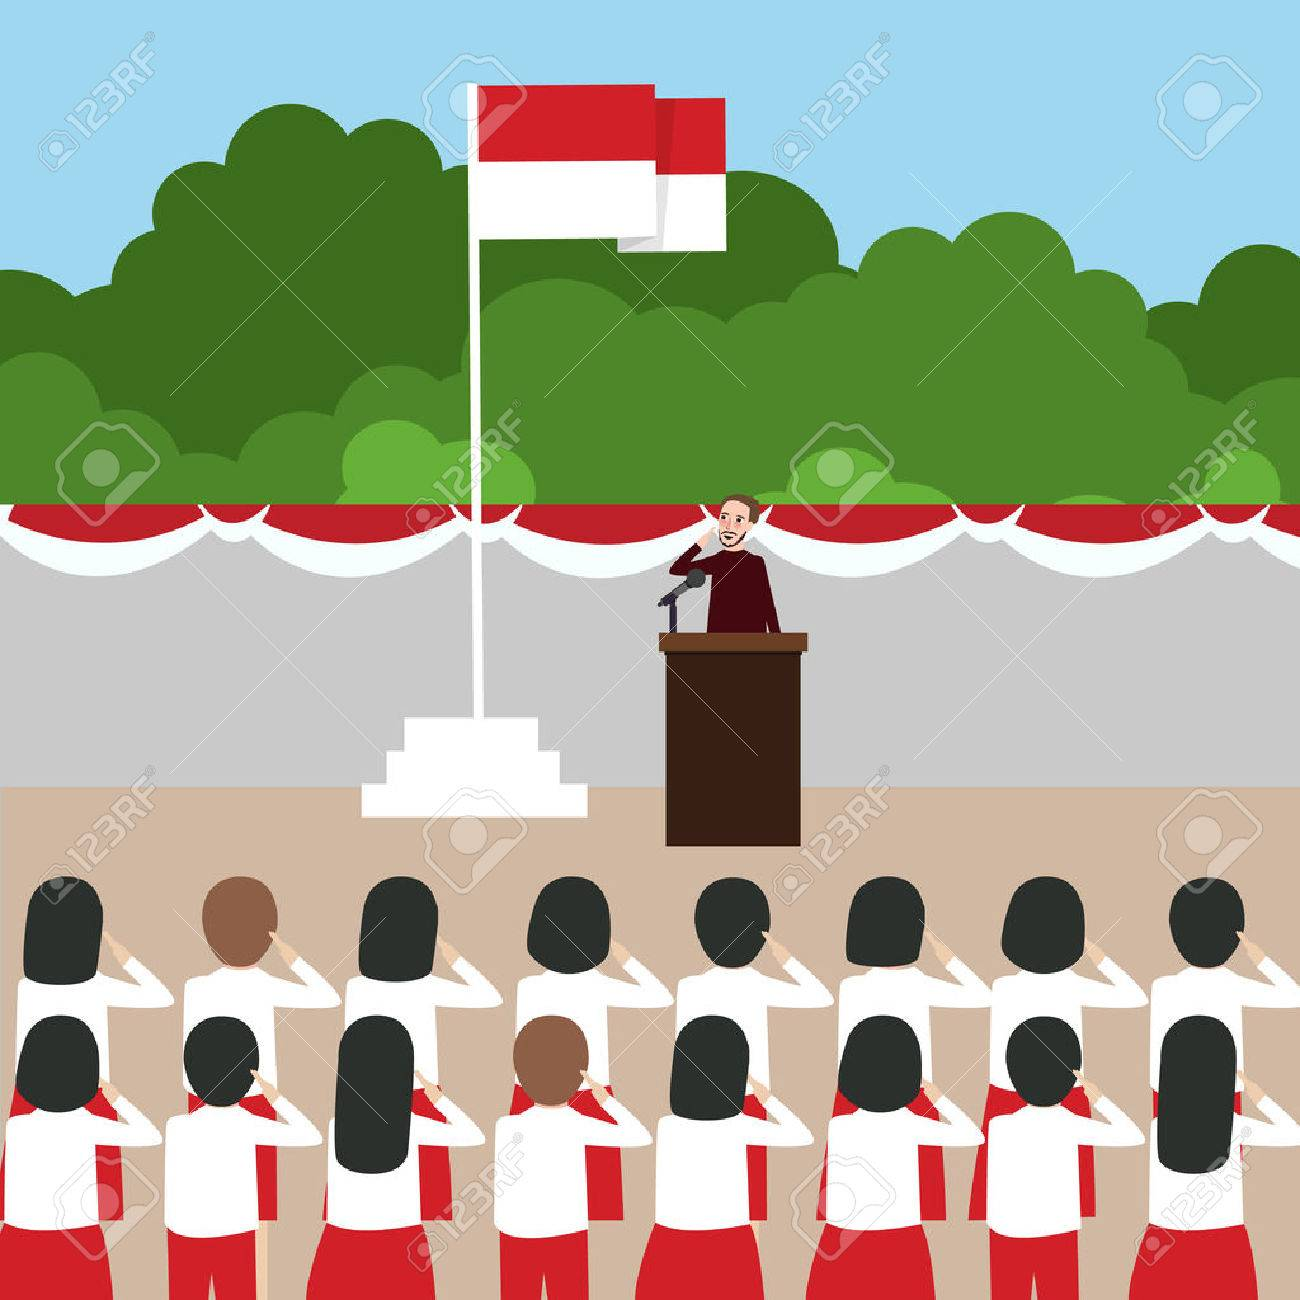 Flag school. Ceremony in clipart station